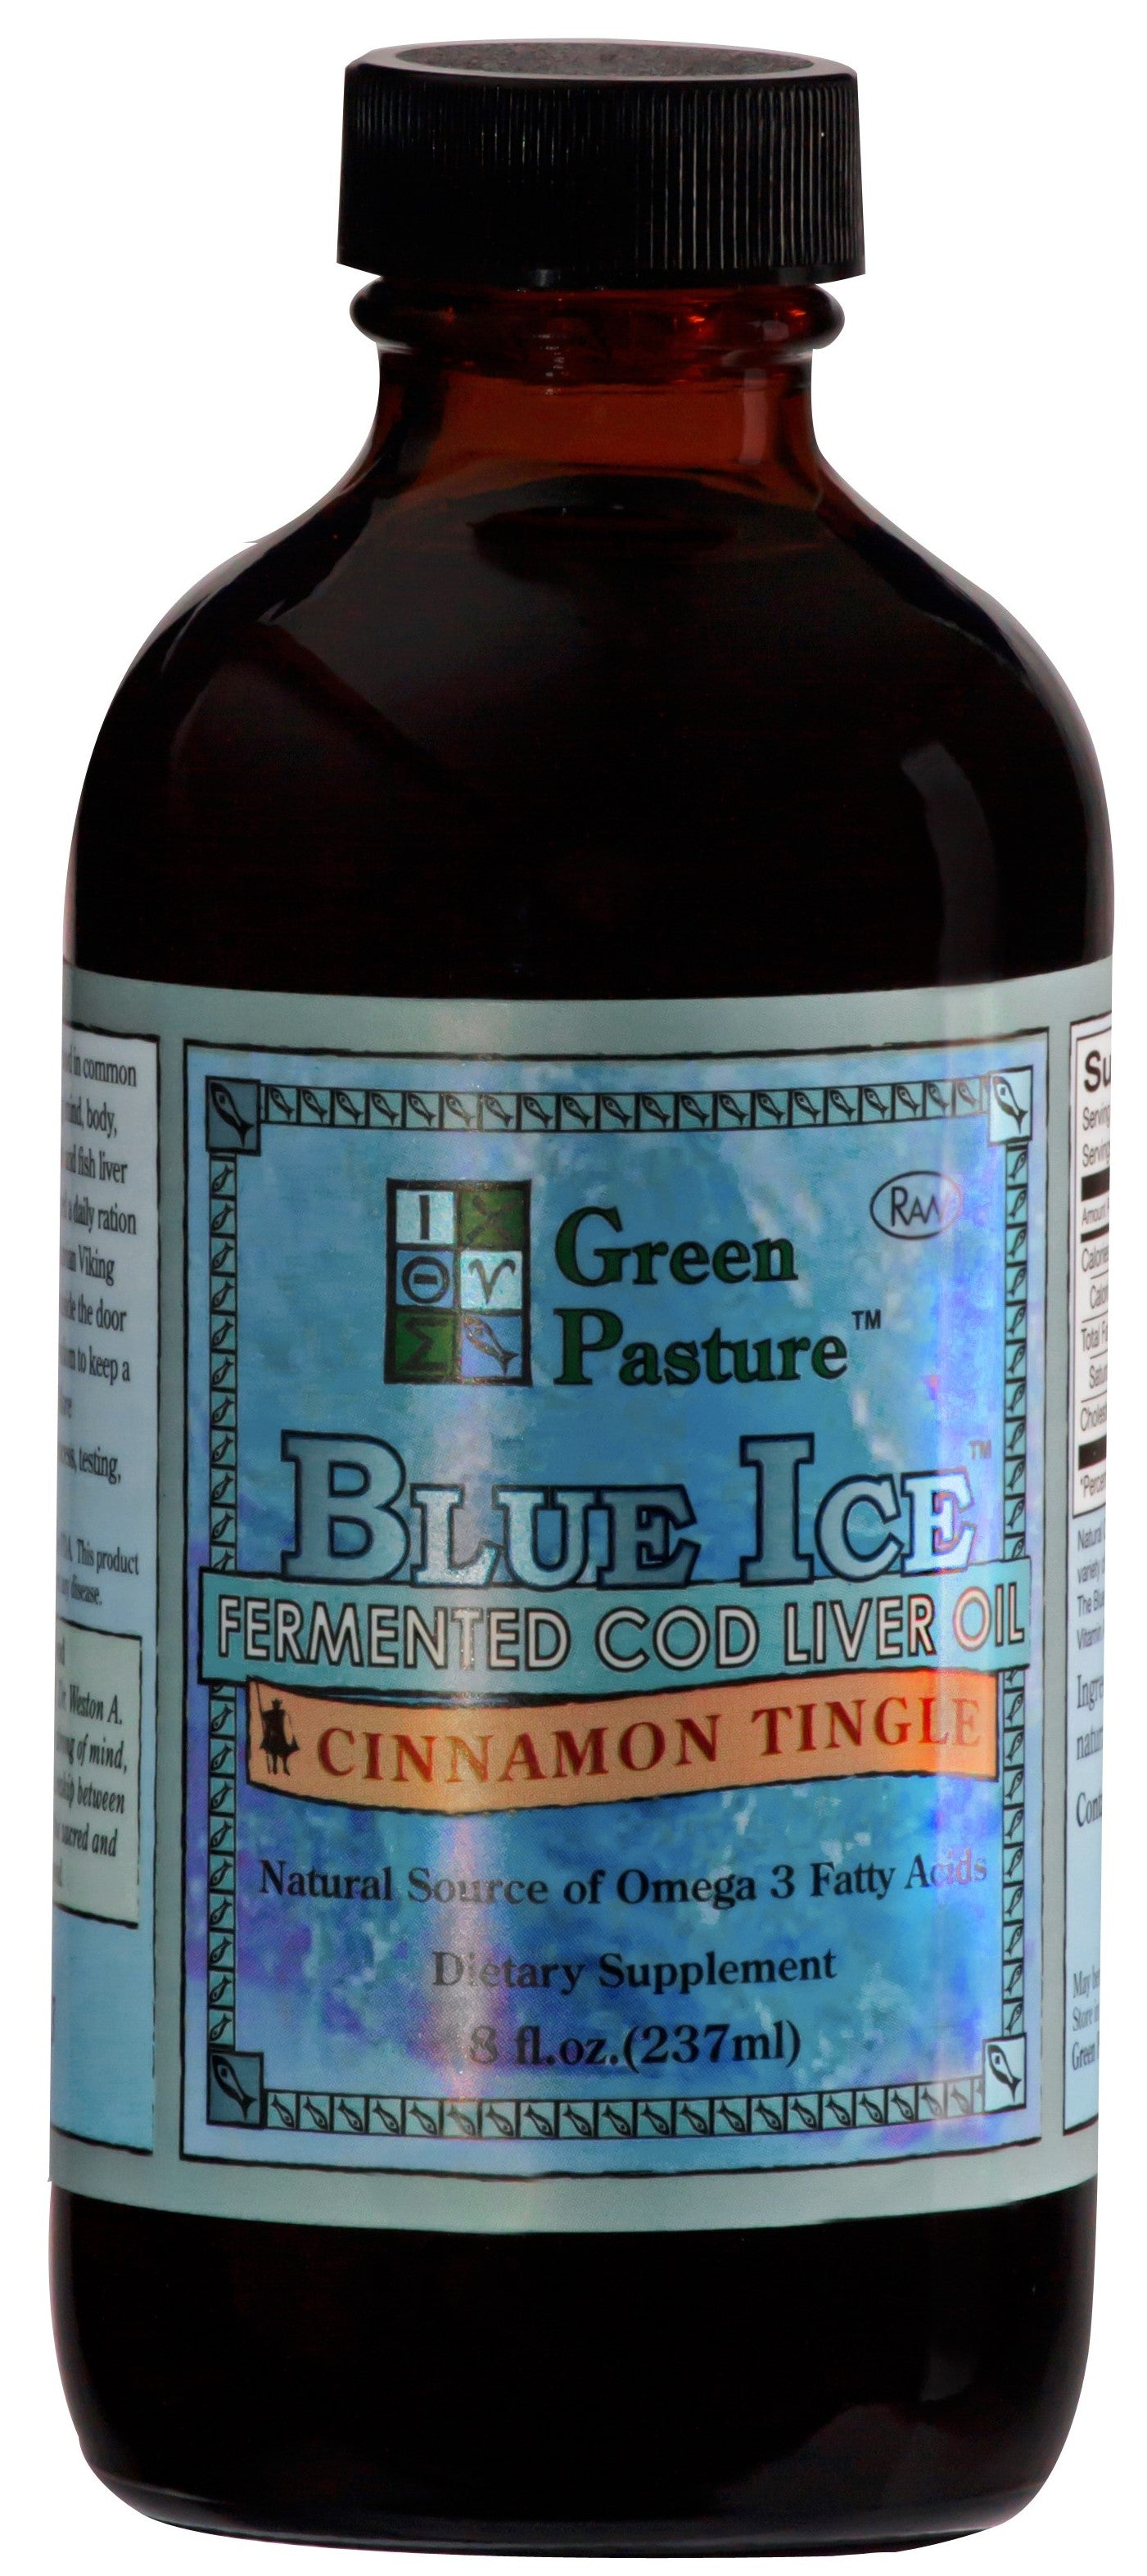 Blue Ice Fermented Cod Liver Oil Liquid 237ml - Cinnamon Tingle